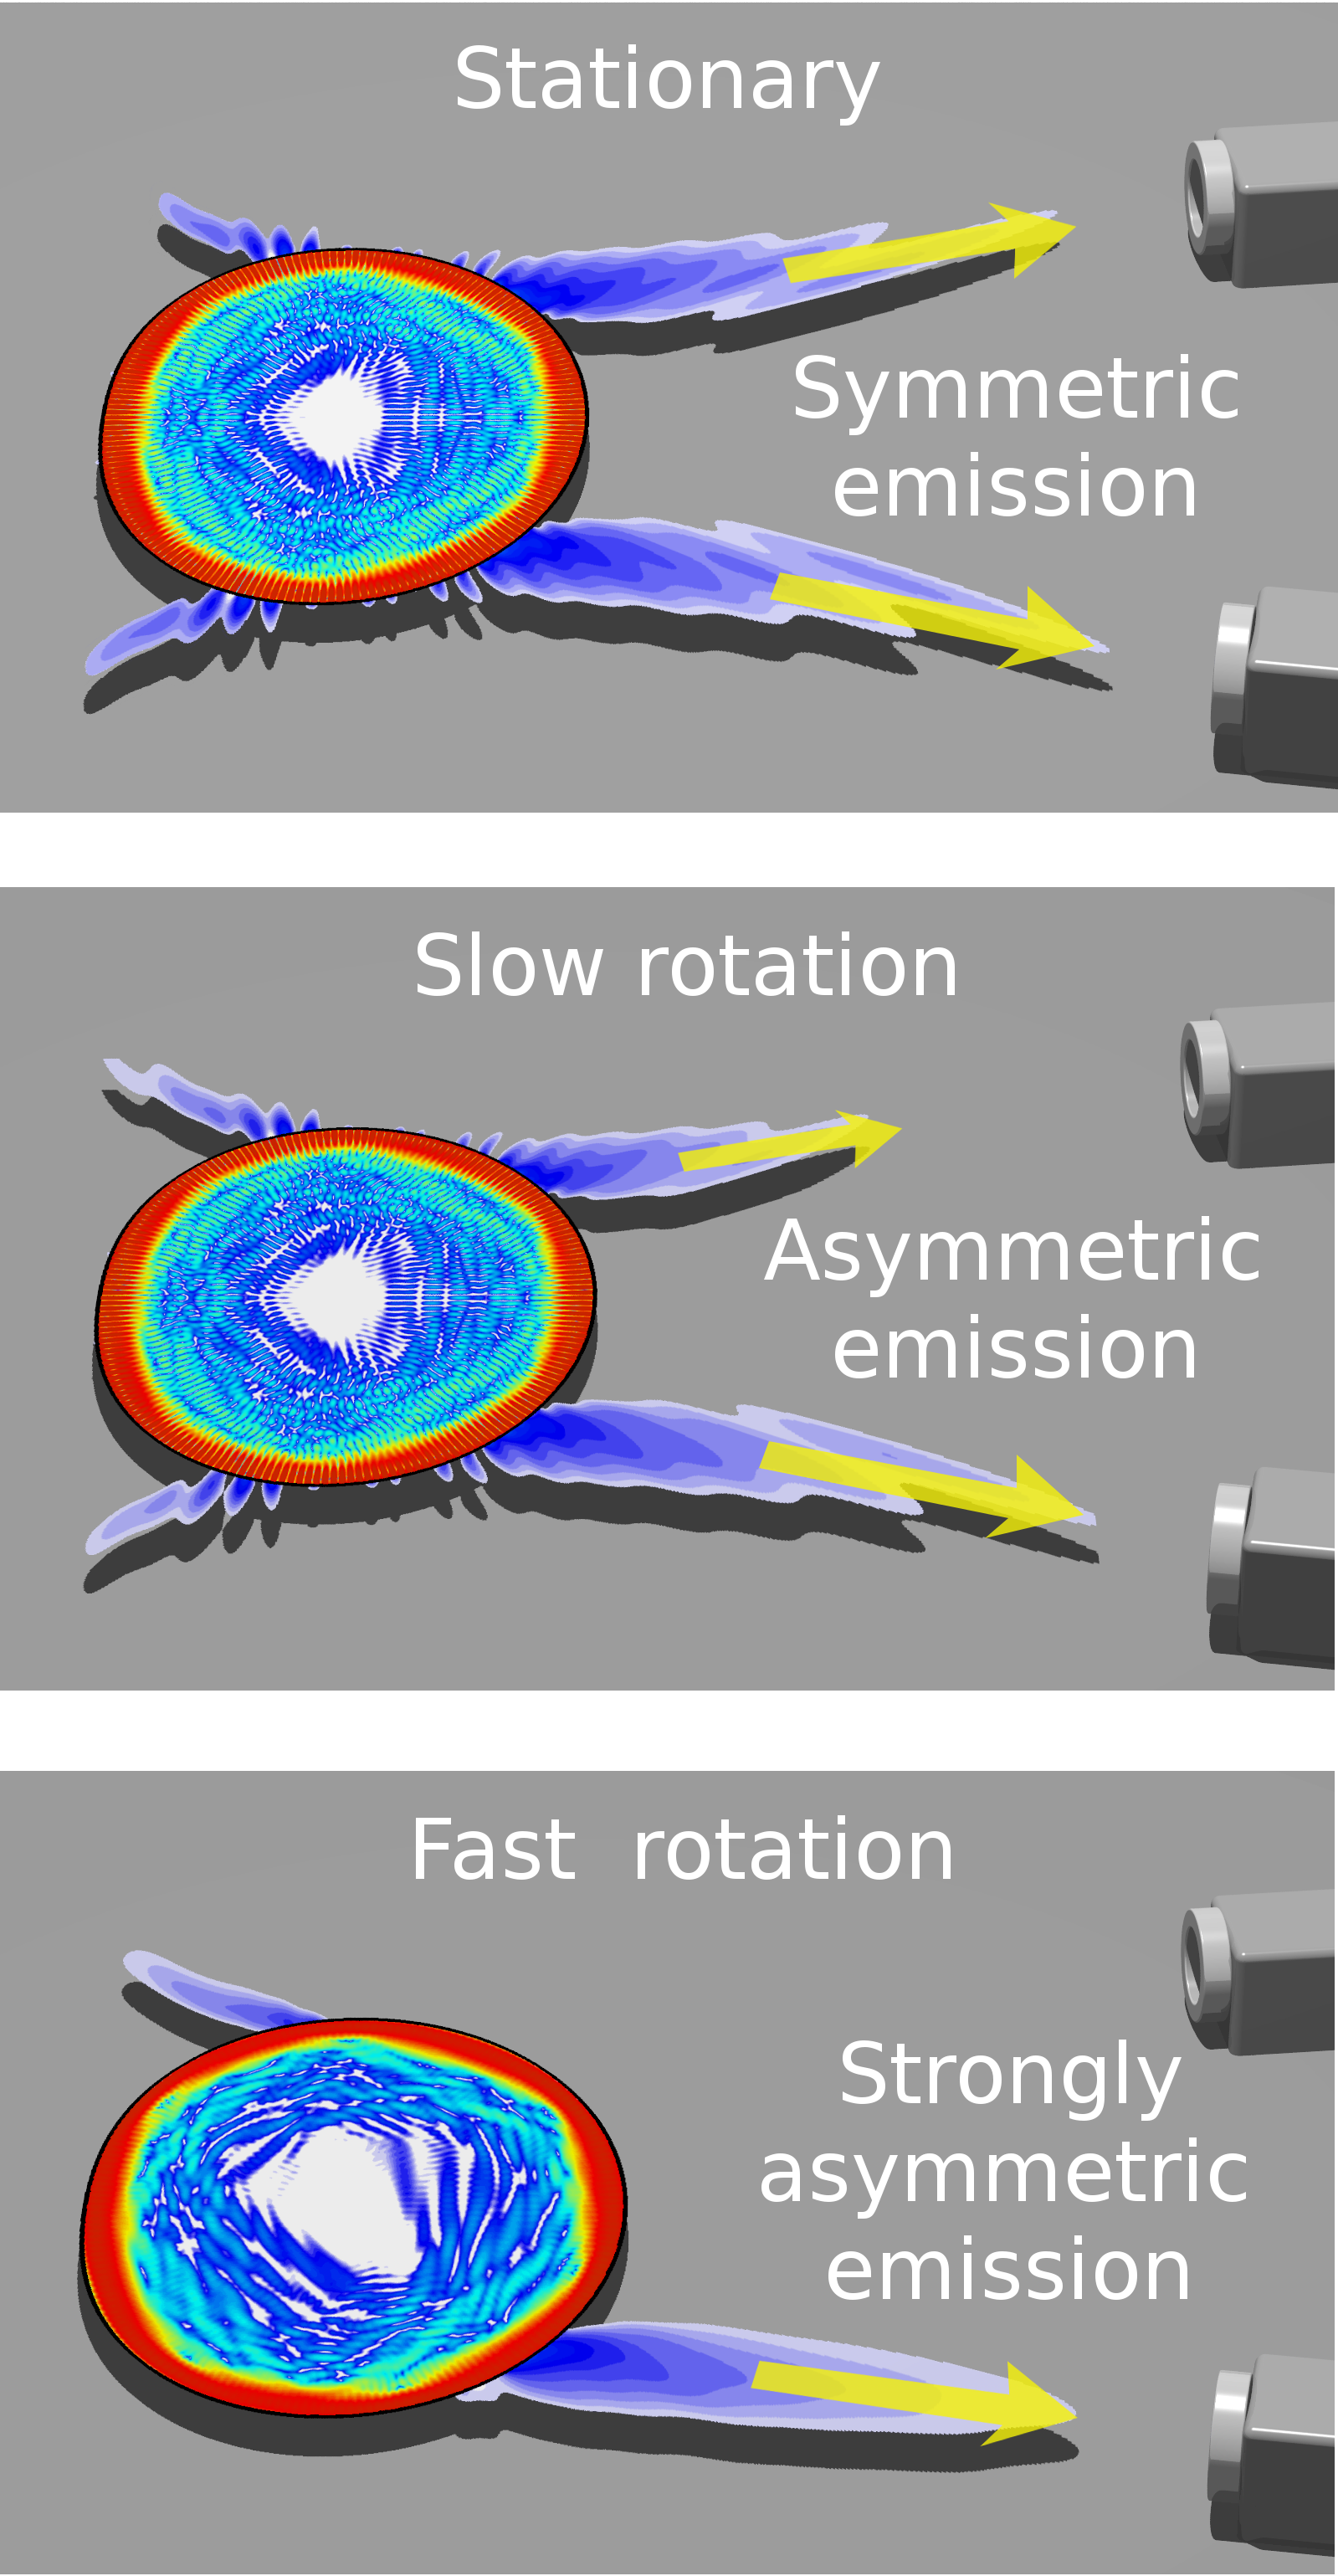 These are schematics showing the far-field emission pattern of a microdisk cavity changing from symmetric to strongly asymmetric. Two cameras on the right monitor the change. Image credit: Li Ge, physicist at the Graduate Center and Staten Island College, City University of New York